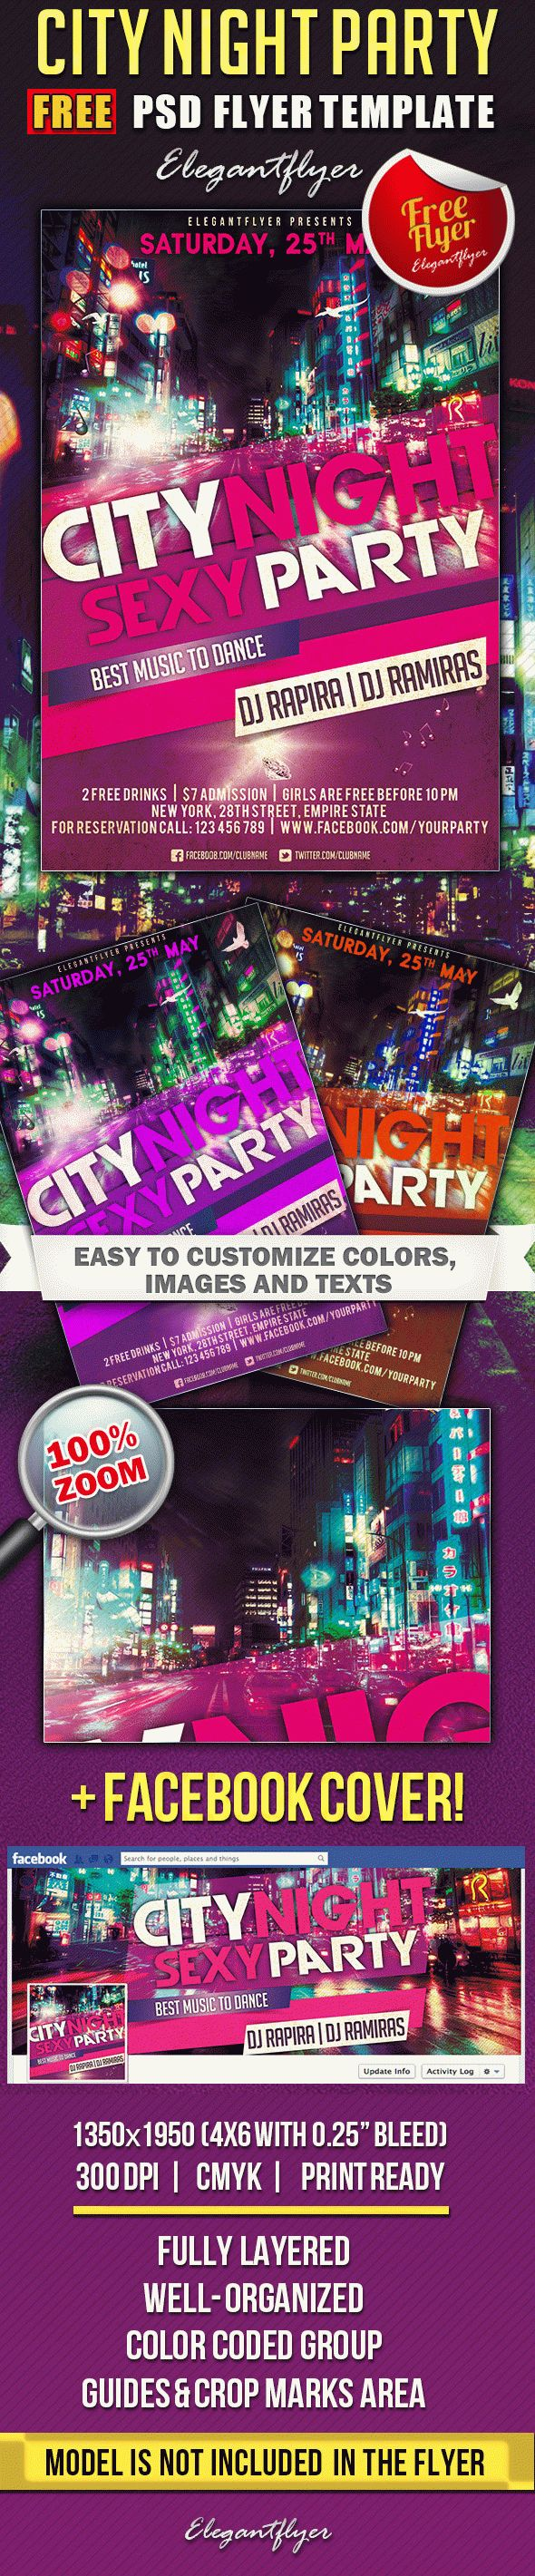 City Night Party – Free Flyer PSD Template + Facebook Cover